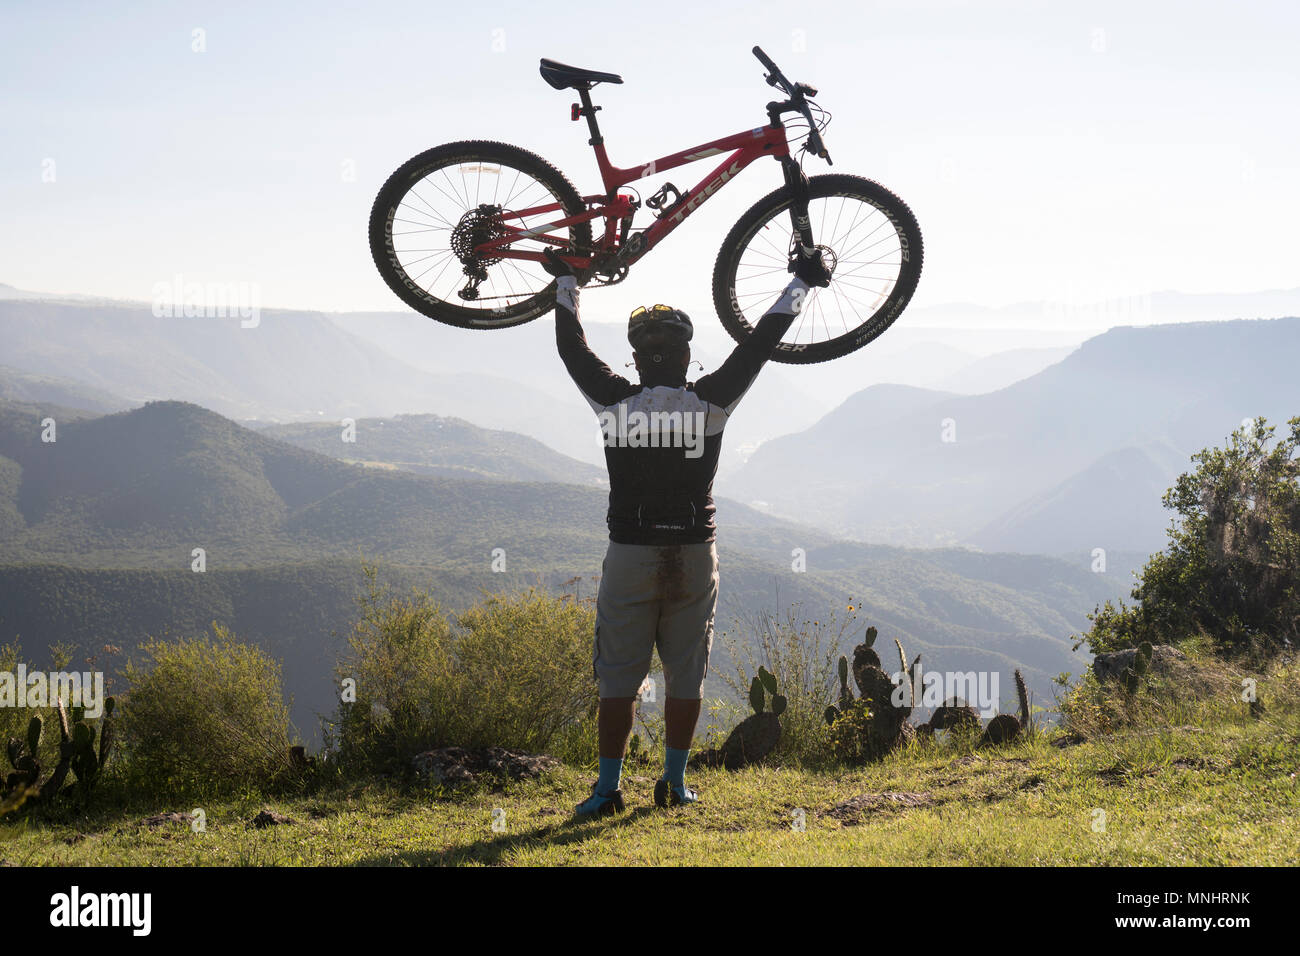 Rear view of man holding aloft mountain bike in natural setting with mountains in background, Pena del Aire, Huasca de Ocampo, Hidalgo, Mexico - Stock Image